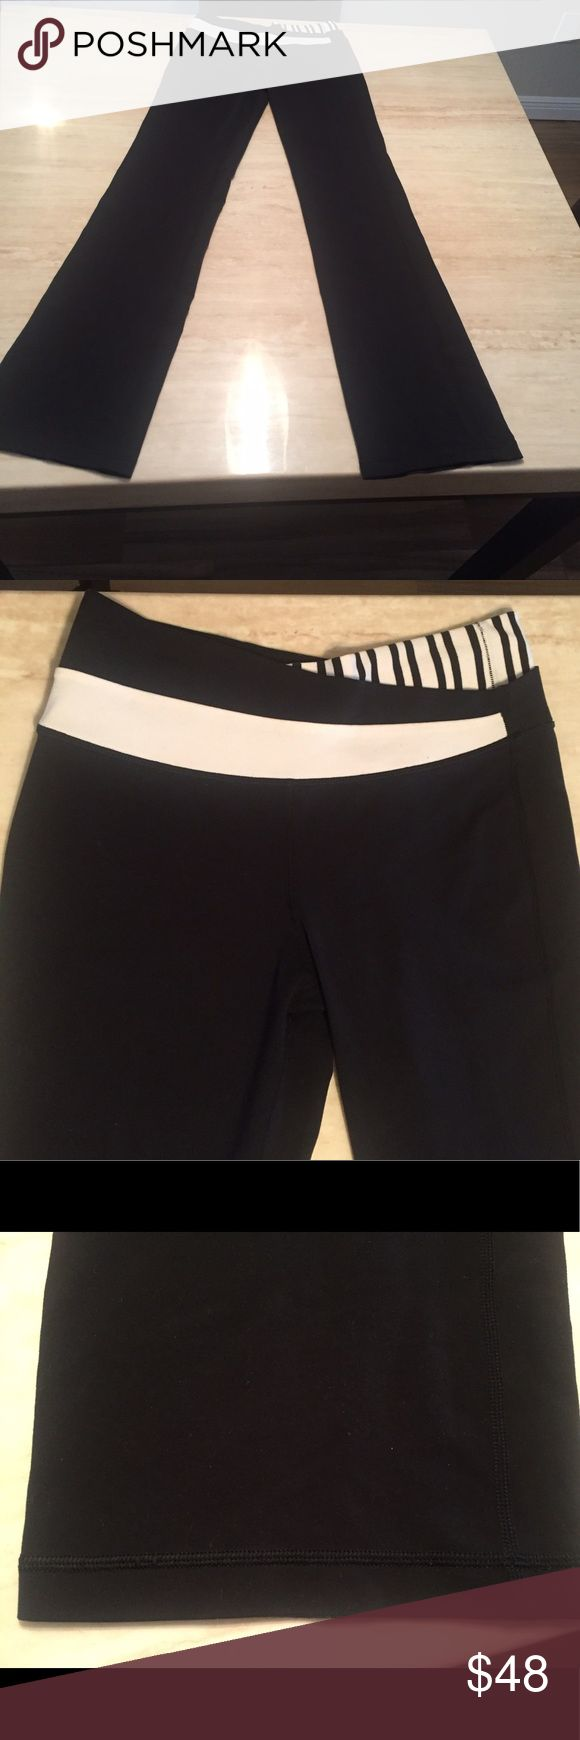 """Adorable Black/White Lululemon 6 Tall Yoga Pants This is an adorable pair of Authentic Lululemon Black and white striped yoga pants in a size 6 tall. These are in excellent condition and the waist stretches to 16"""" with a 35.5"""" inseam. Unless you are very tall the inseam  most likely will have to be altered. lululemon athletica Pants Track Pants & Joggers"""